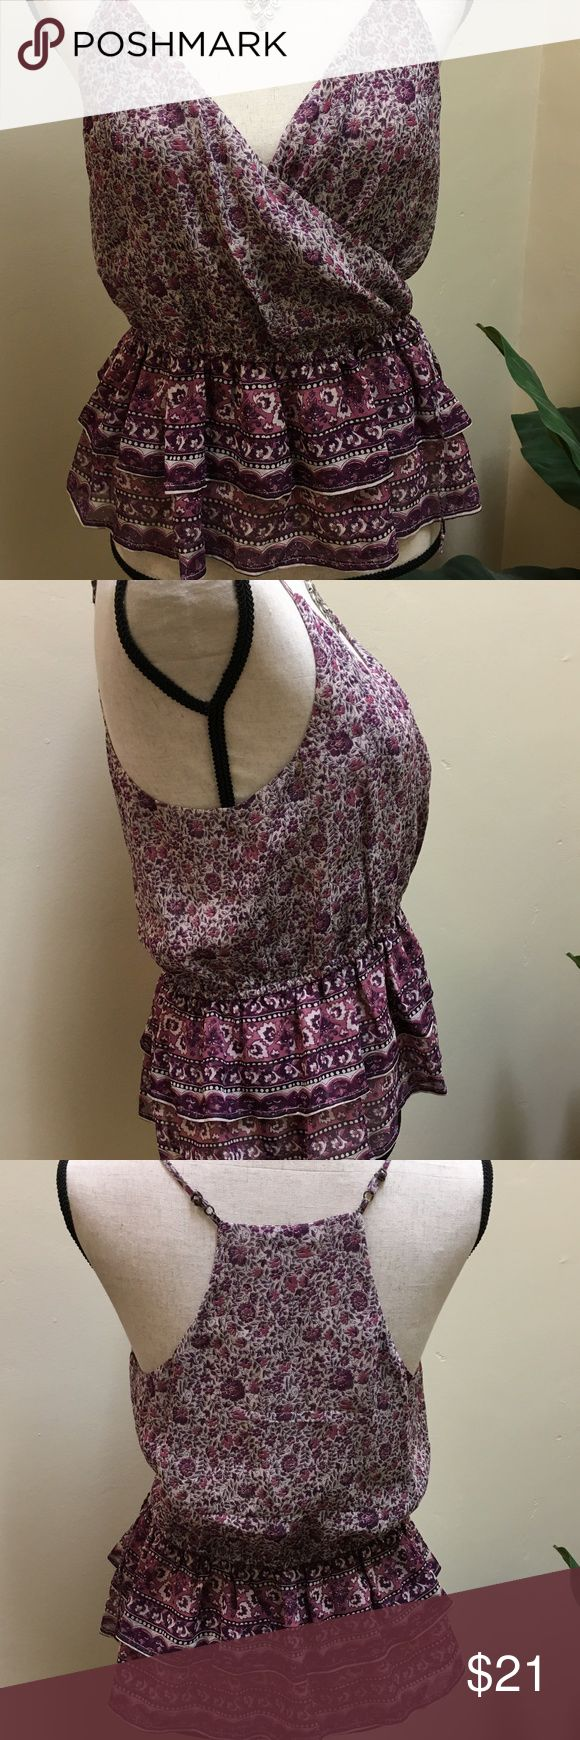 """Joie Silk Cami, Shara Purple, Size Small A pretty mix of floral prints converge on a semi-sheer chiffon tank, pleated on each side of the split neckline and finished with tasseled tie.  Will par great with your favorite denim or a skirt. 100% silk. Dry clean. Bust 17"""" x 23"""" in Length. In Excellent condition. Joie Tops Camisoles"""